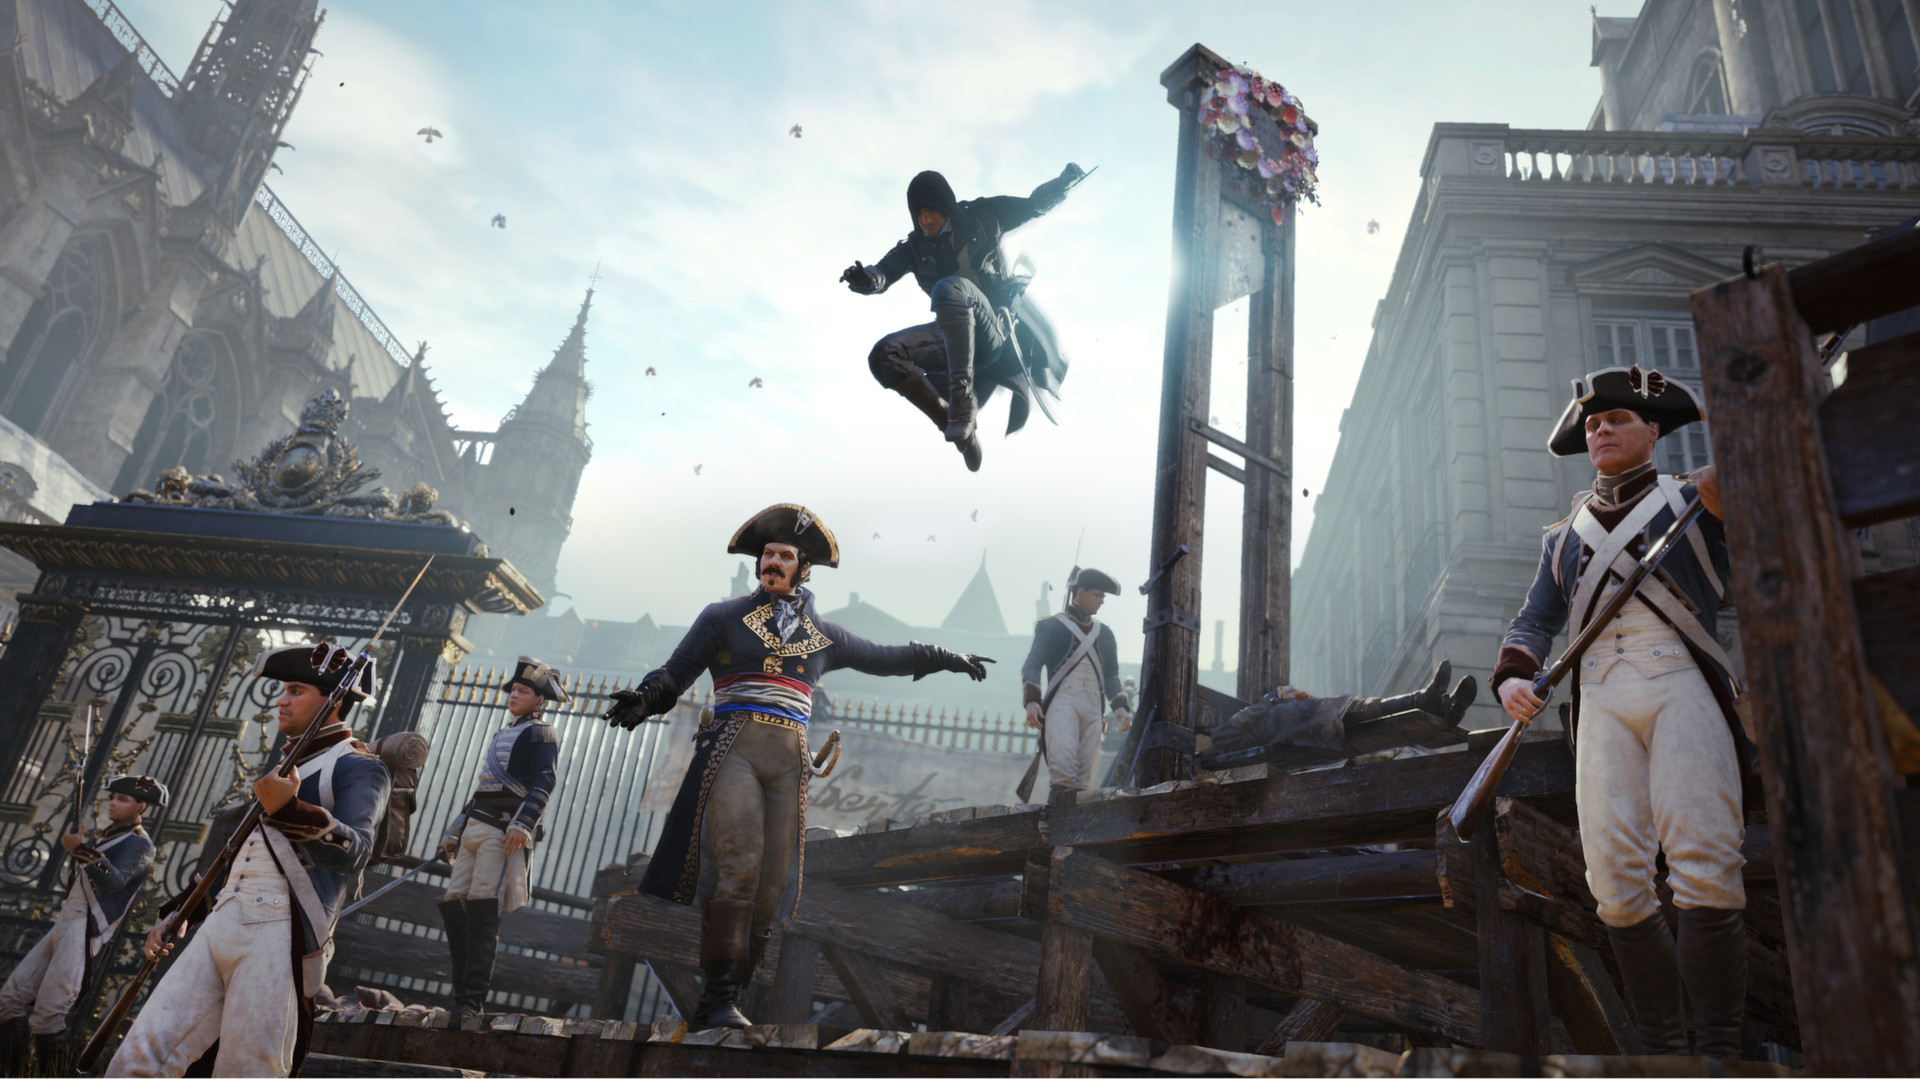 download assassin's creed unity v1.5.0 + dlcs repack - fitgirl singlelink iso rar part google drive direct link uptobox ftp link magnet torrent high seed thepiratebay kickass alternative seeders